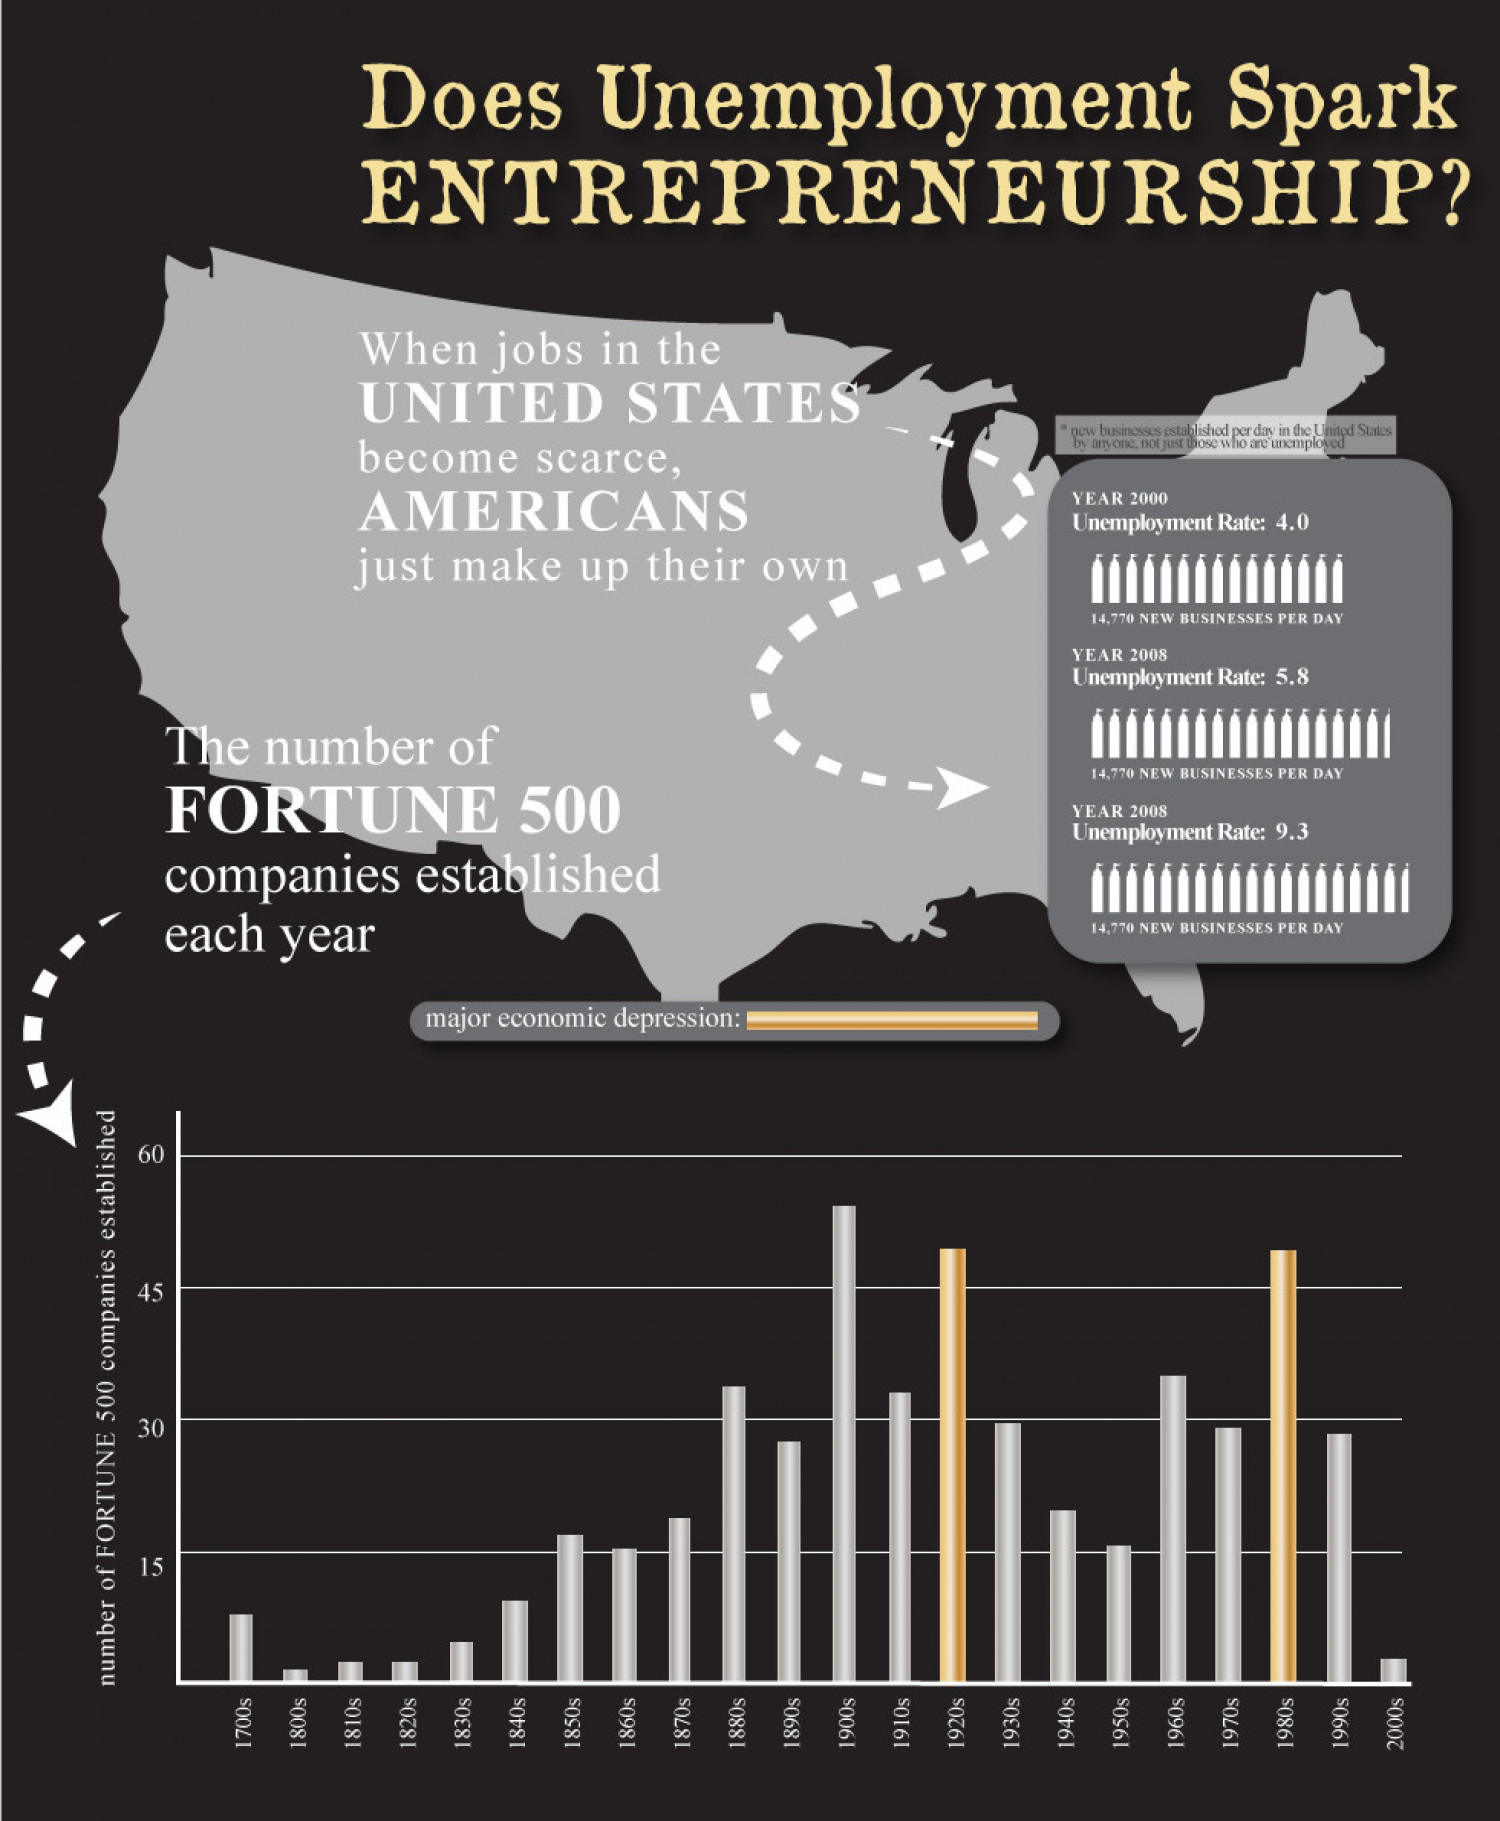 Unemployment Sparks Entrepreneurship Infographic